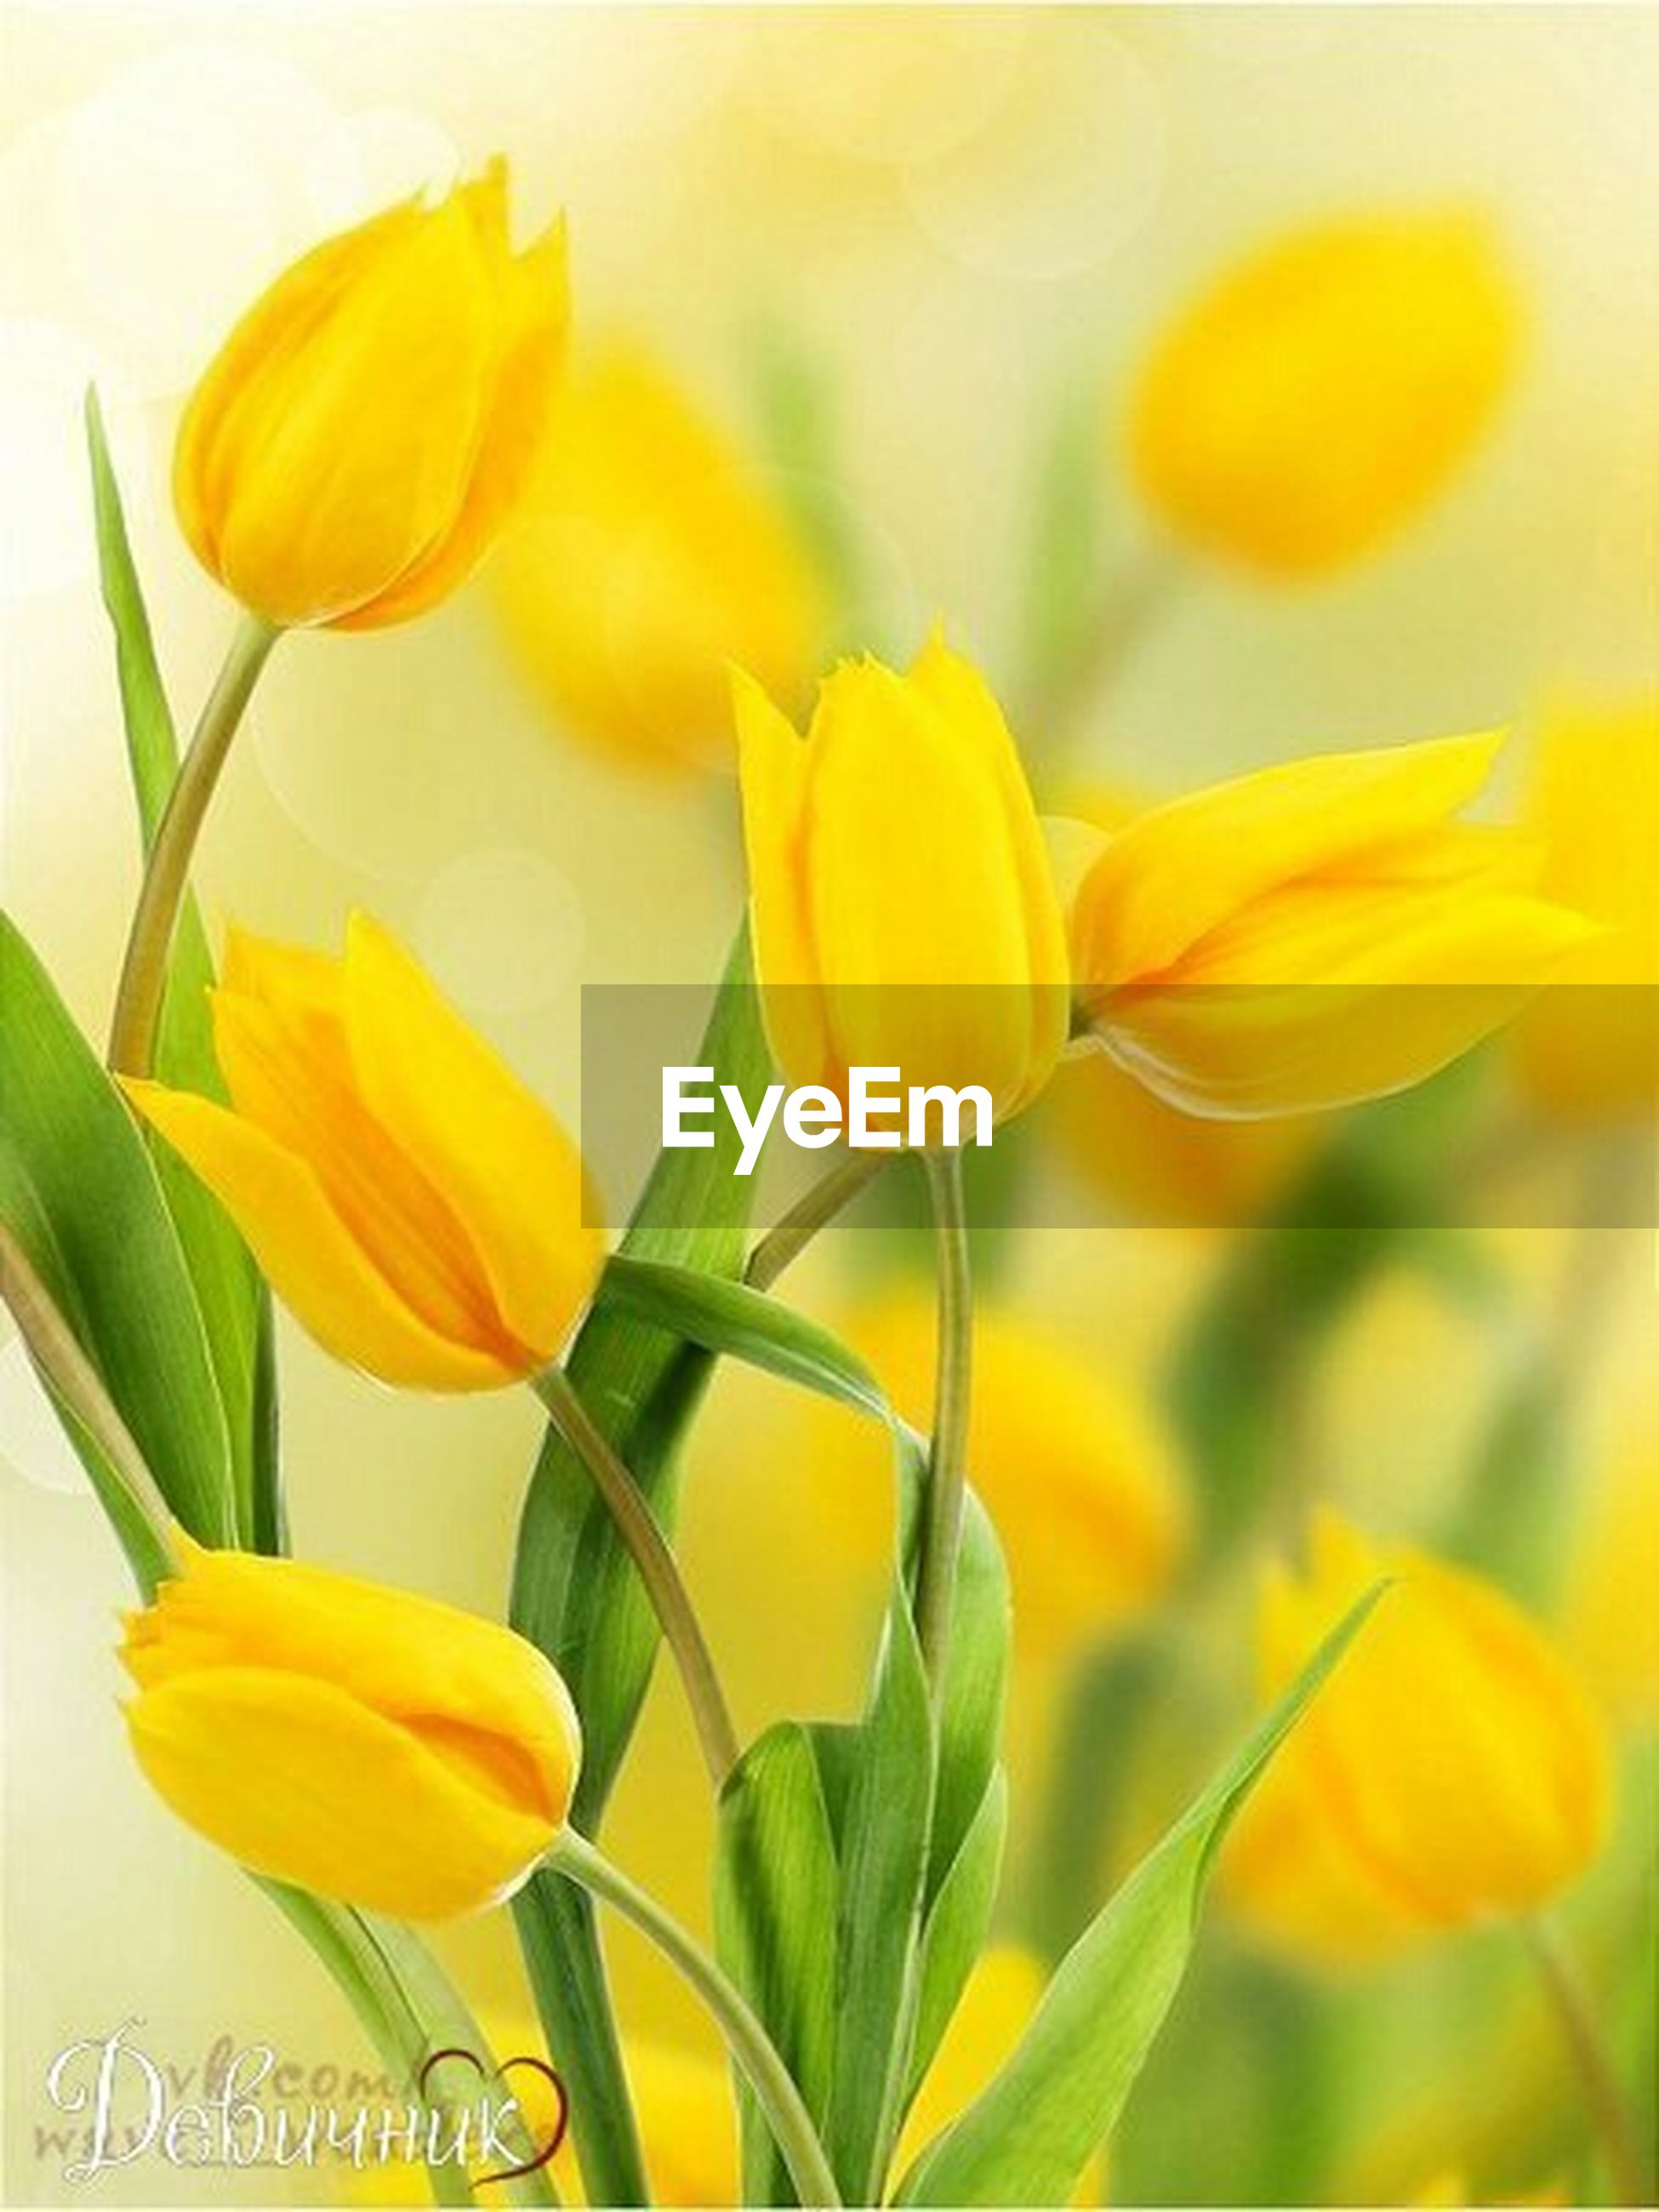 flower, yellow, petal, freshness, fragility, growth, flower head, beauty in nature, plant, close-up, nature, stem, focus on foreground, blooming, in bloom, no people, orange color, bud, leaf, selective focus